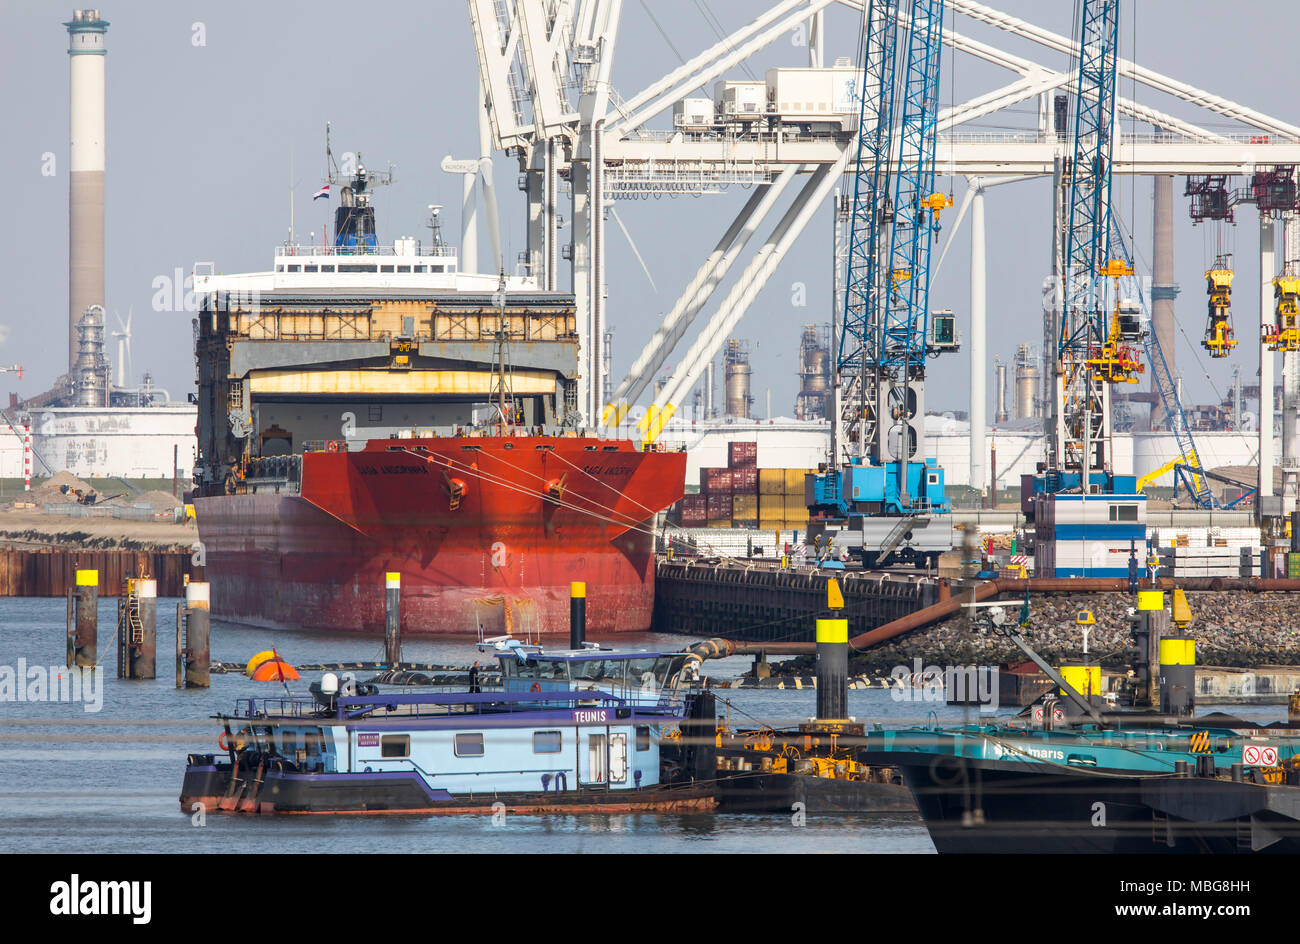 The seaport of Rotterdam, Netherlands, deep-sea port Maasvlakte 2, on an artificially created land area in front of the original coast, - Stock Image